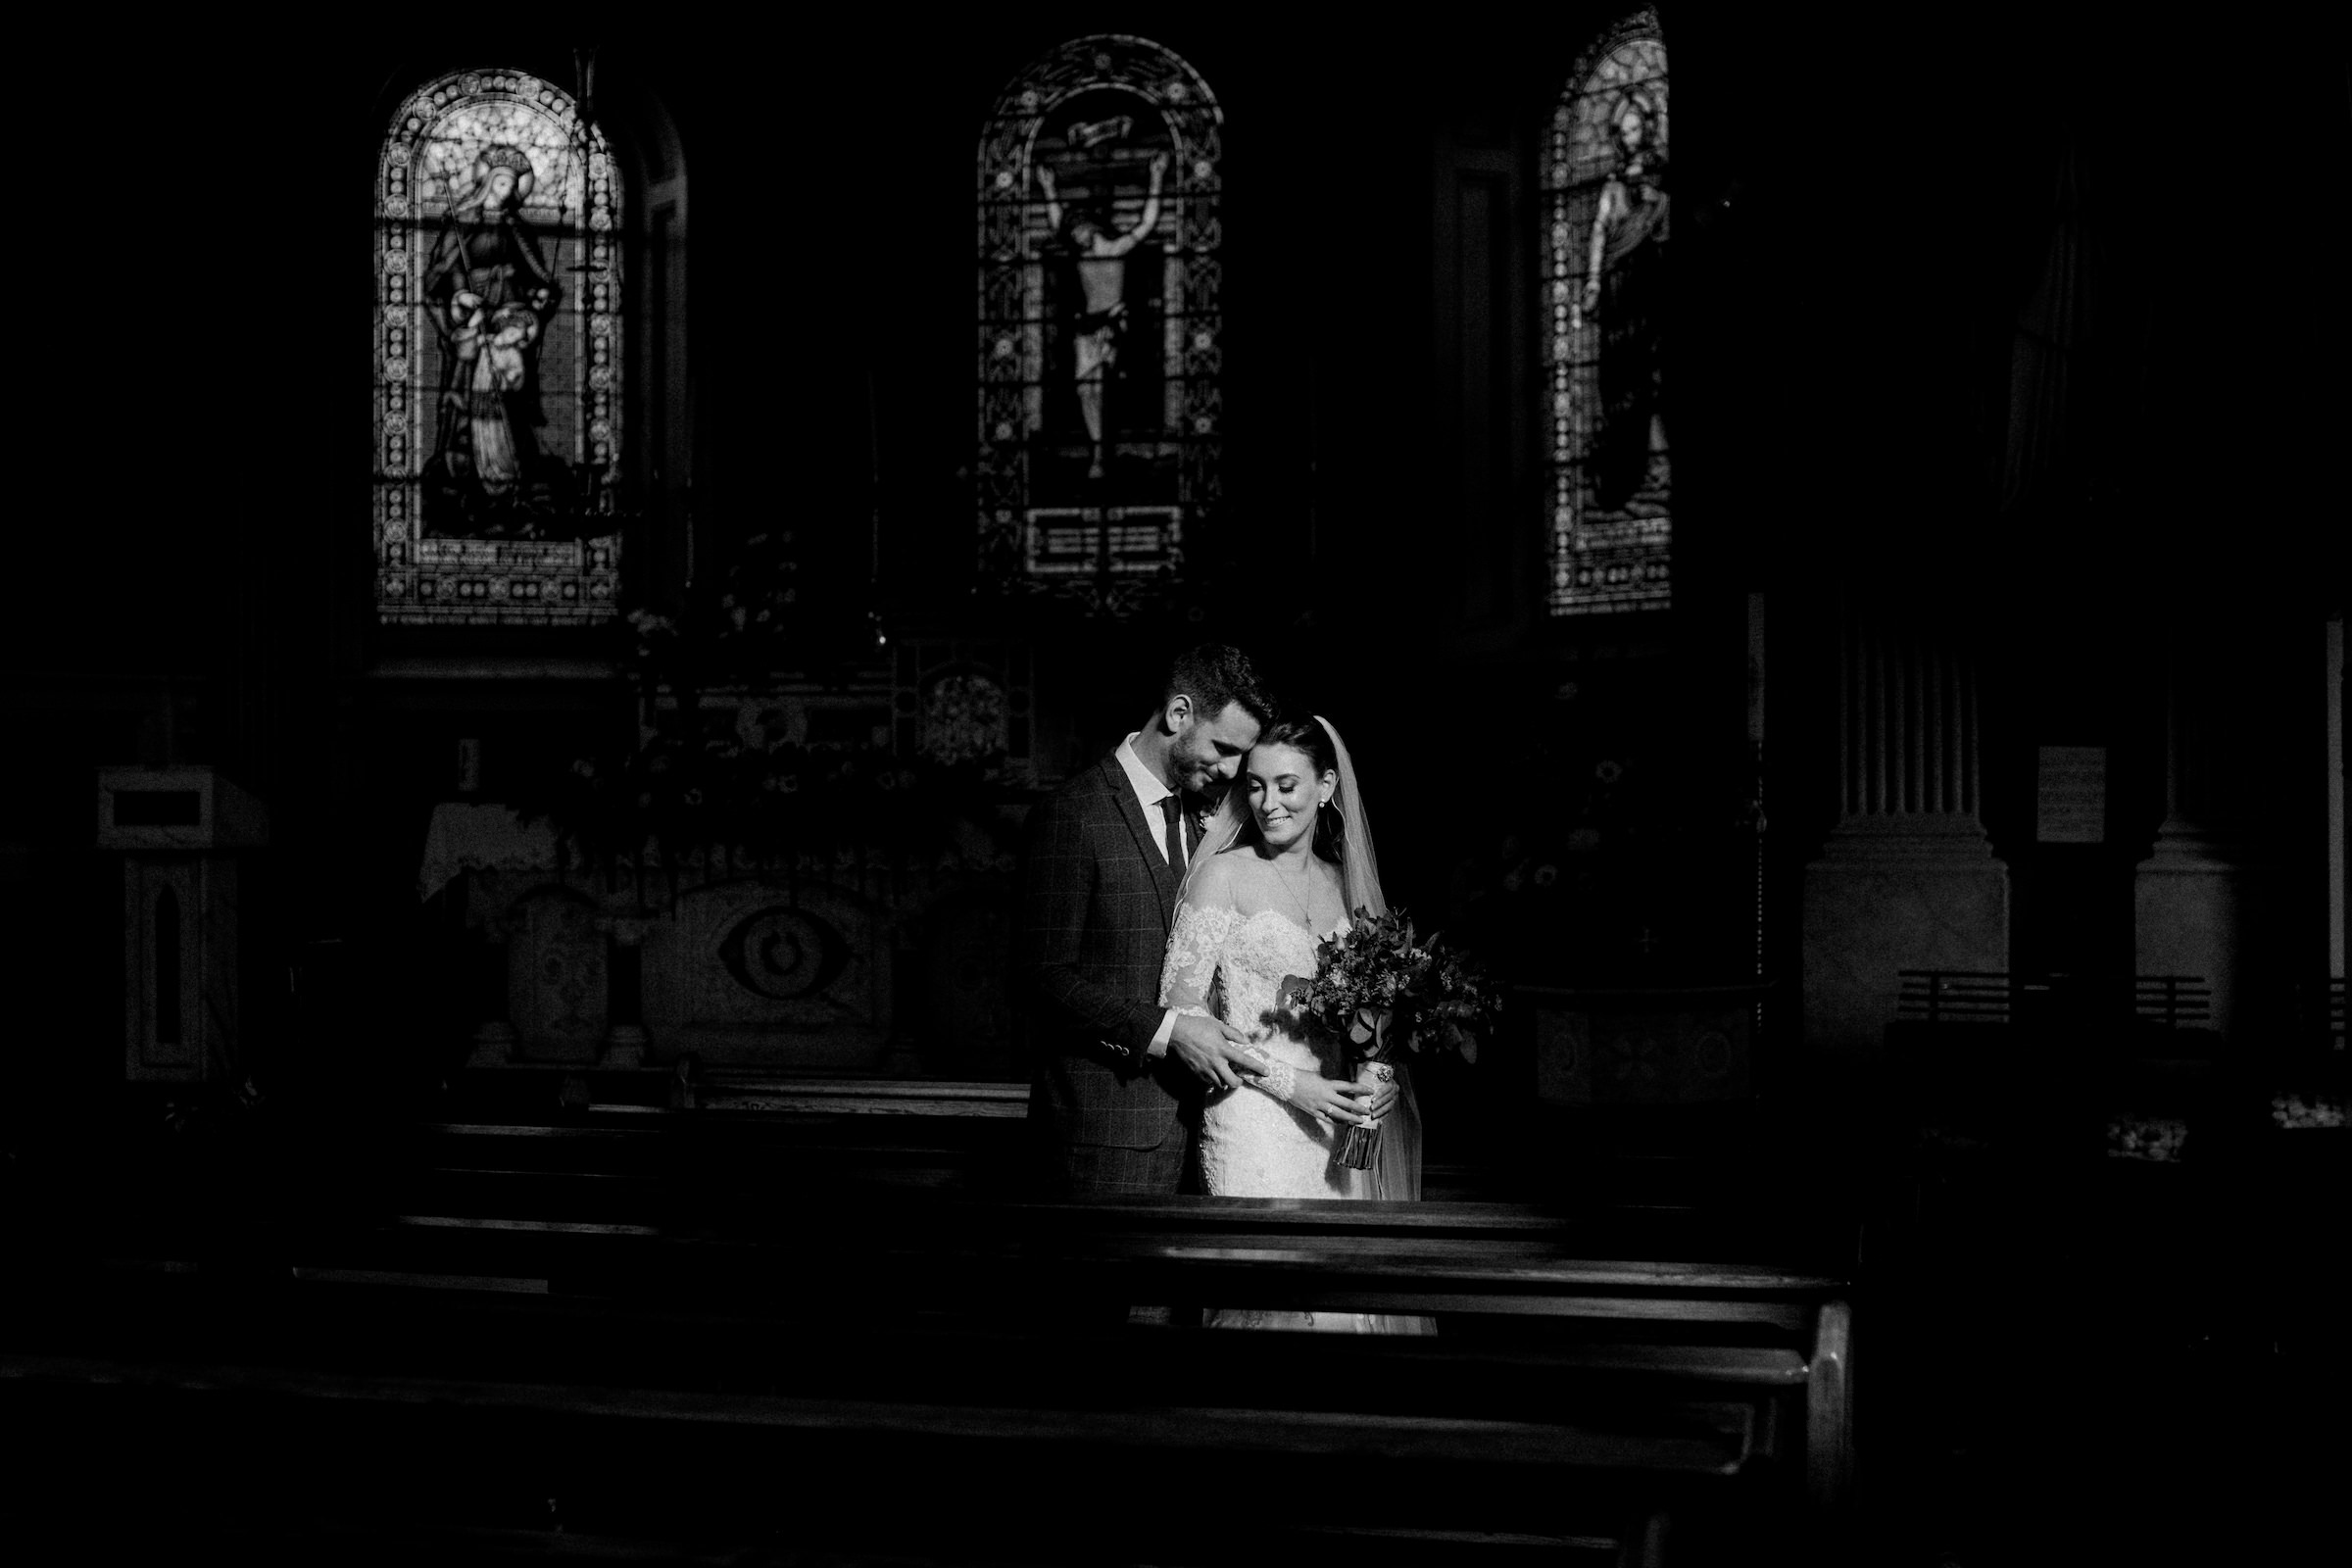 Bride and groom in bright windowlight at church - photo by White Cat Studio